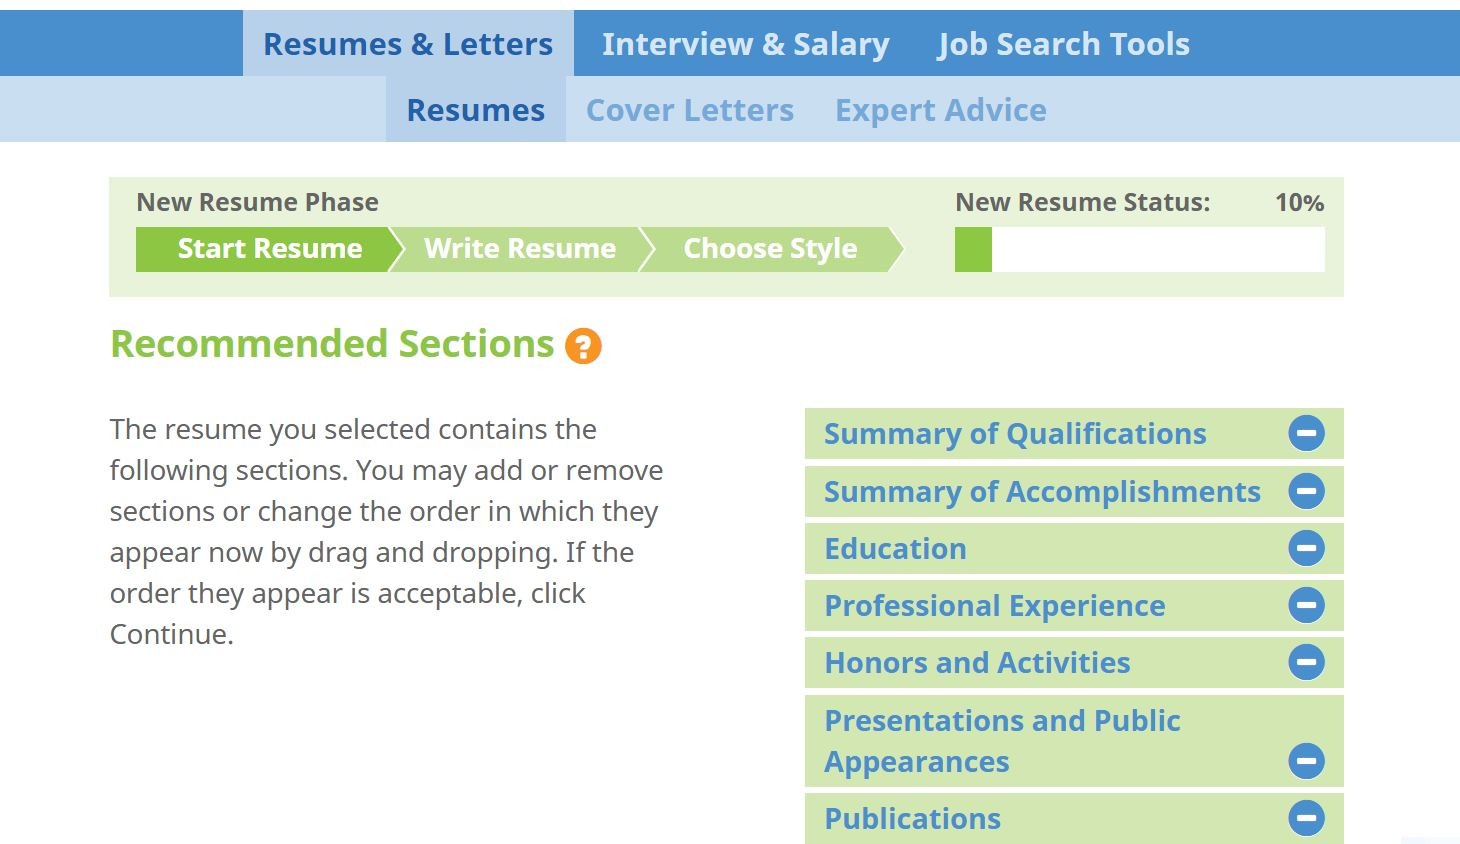 Job Search & Business Card Software, ResumeMakerPro Web - Annual Subscription Screenshot